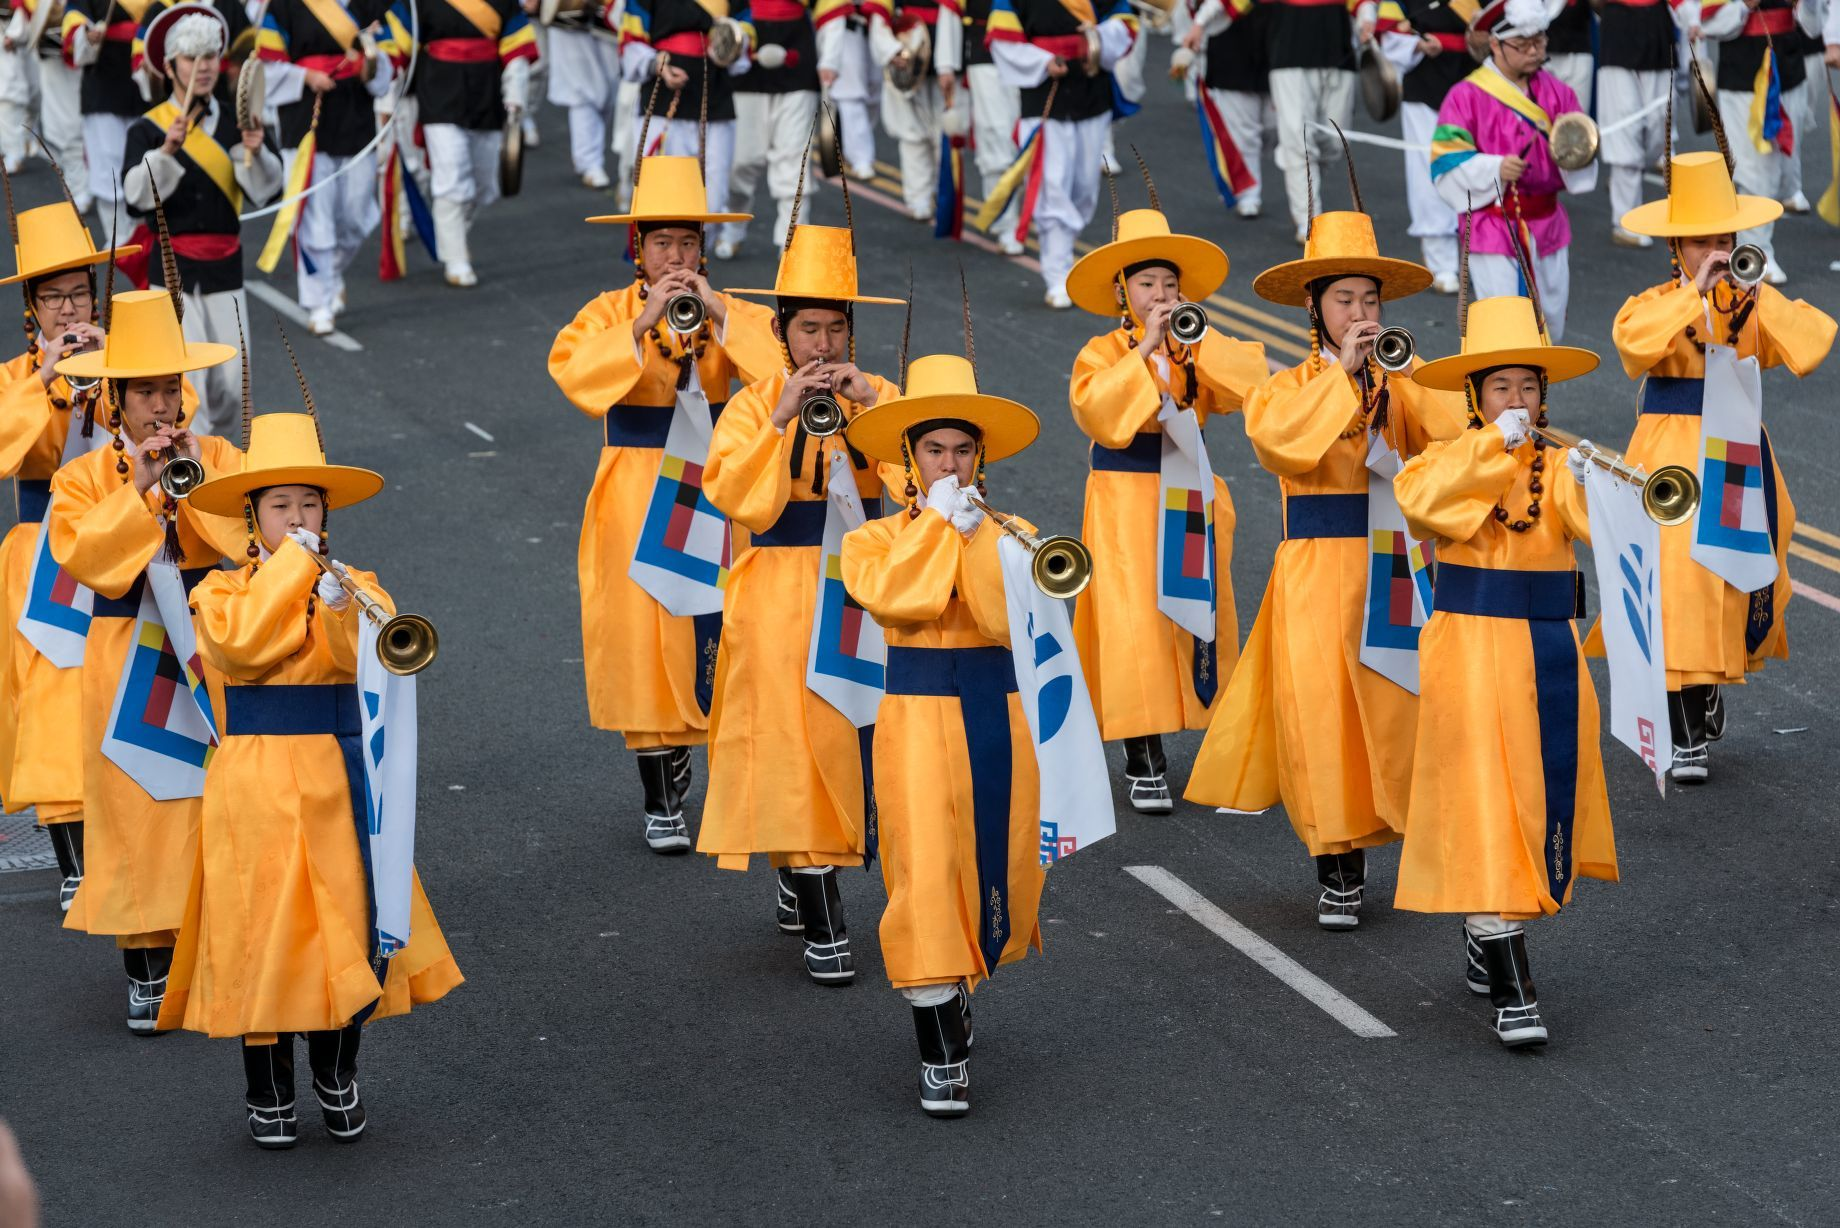 Members-of-the-PAVA-World-Korean-Traditional-Marching-Band-Library-of-Congress